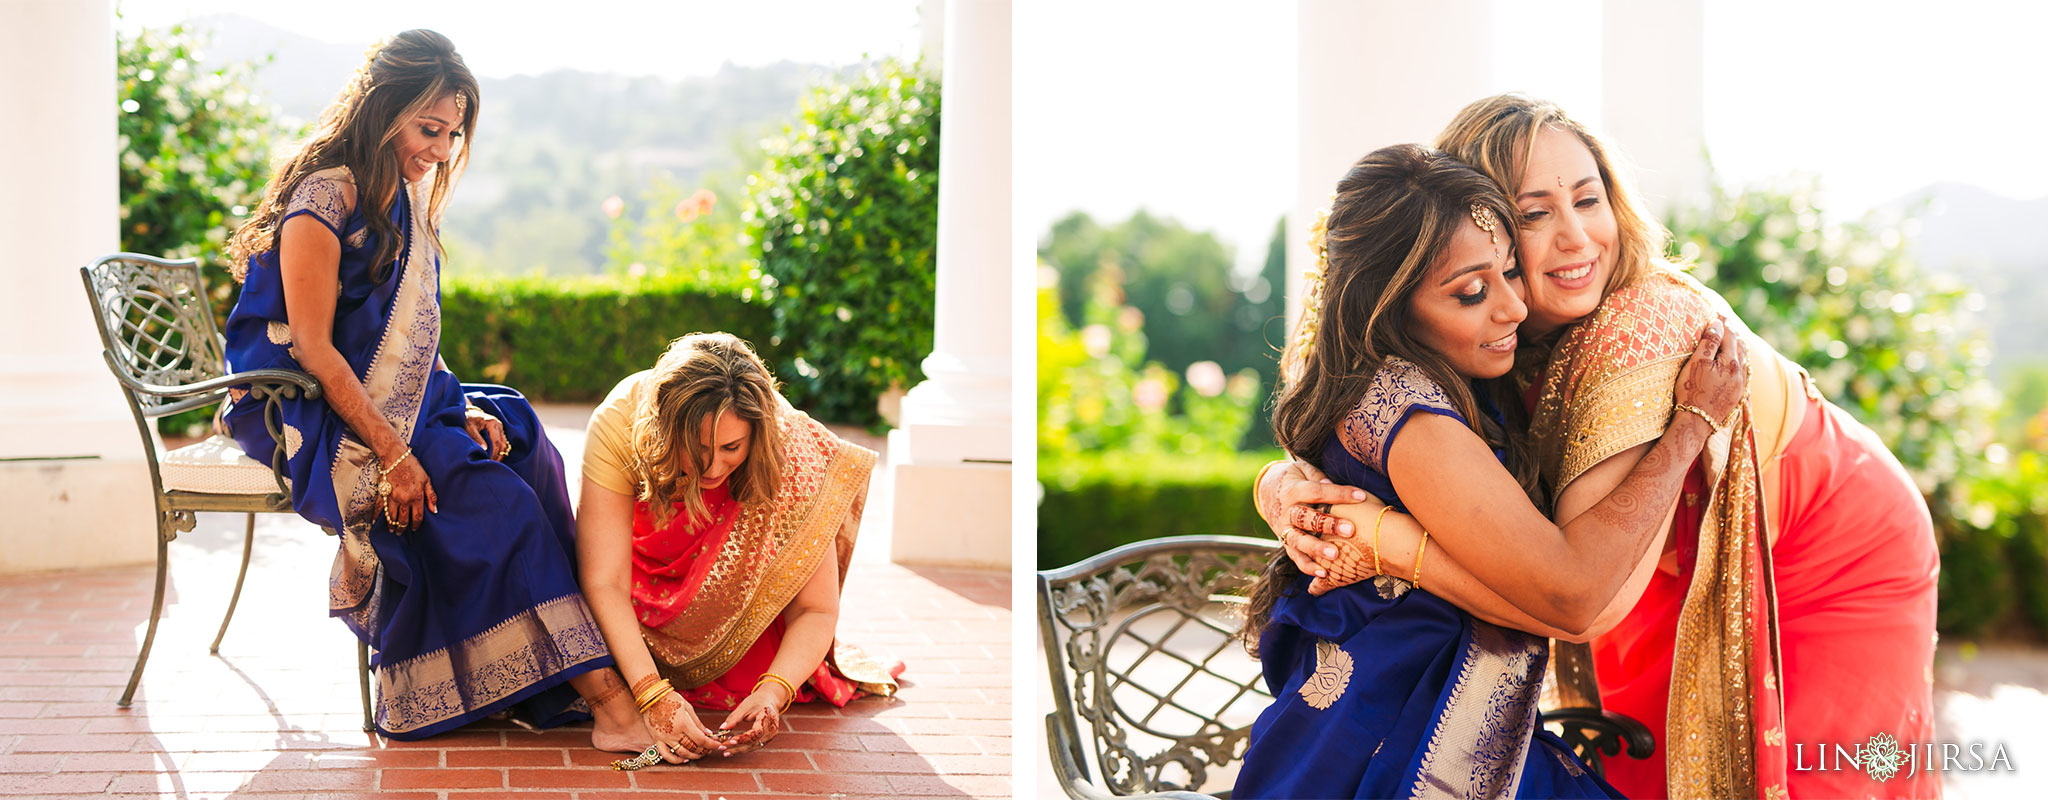 002 sherwood country club indian wedding photography